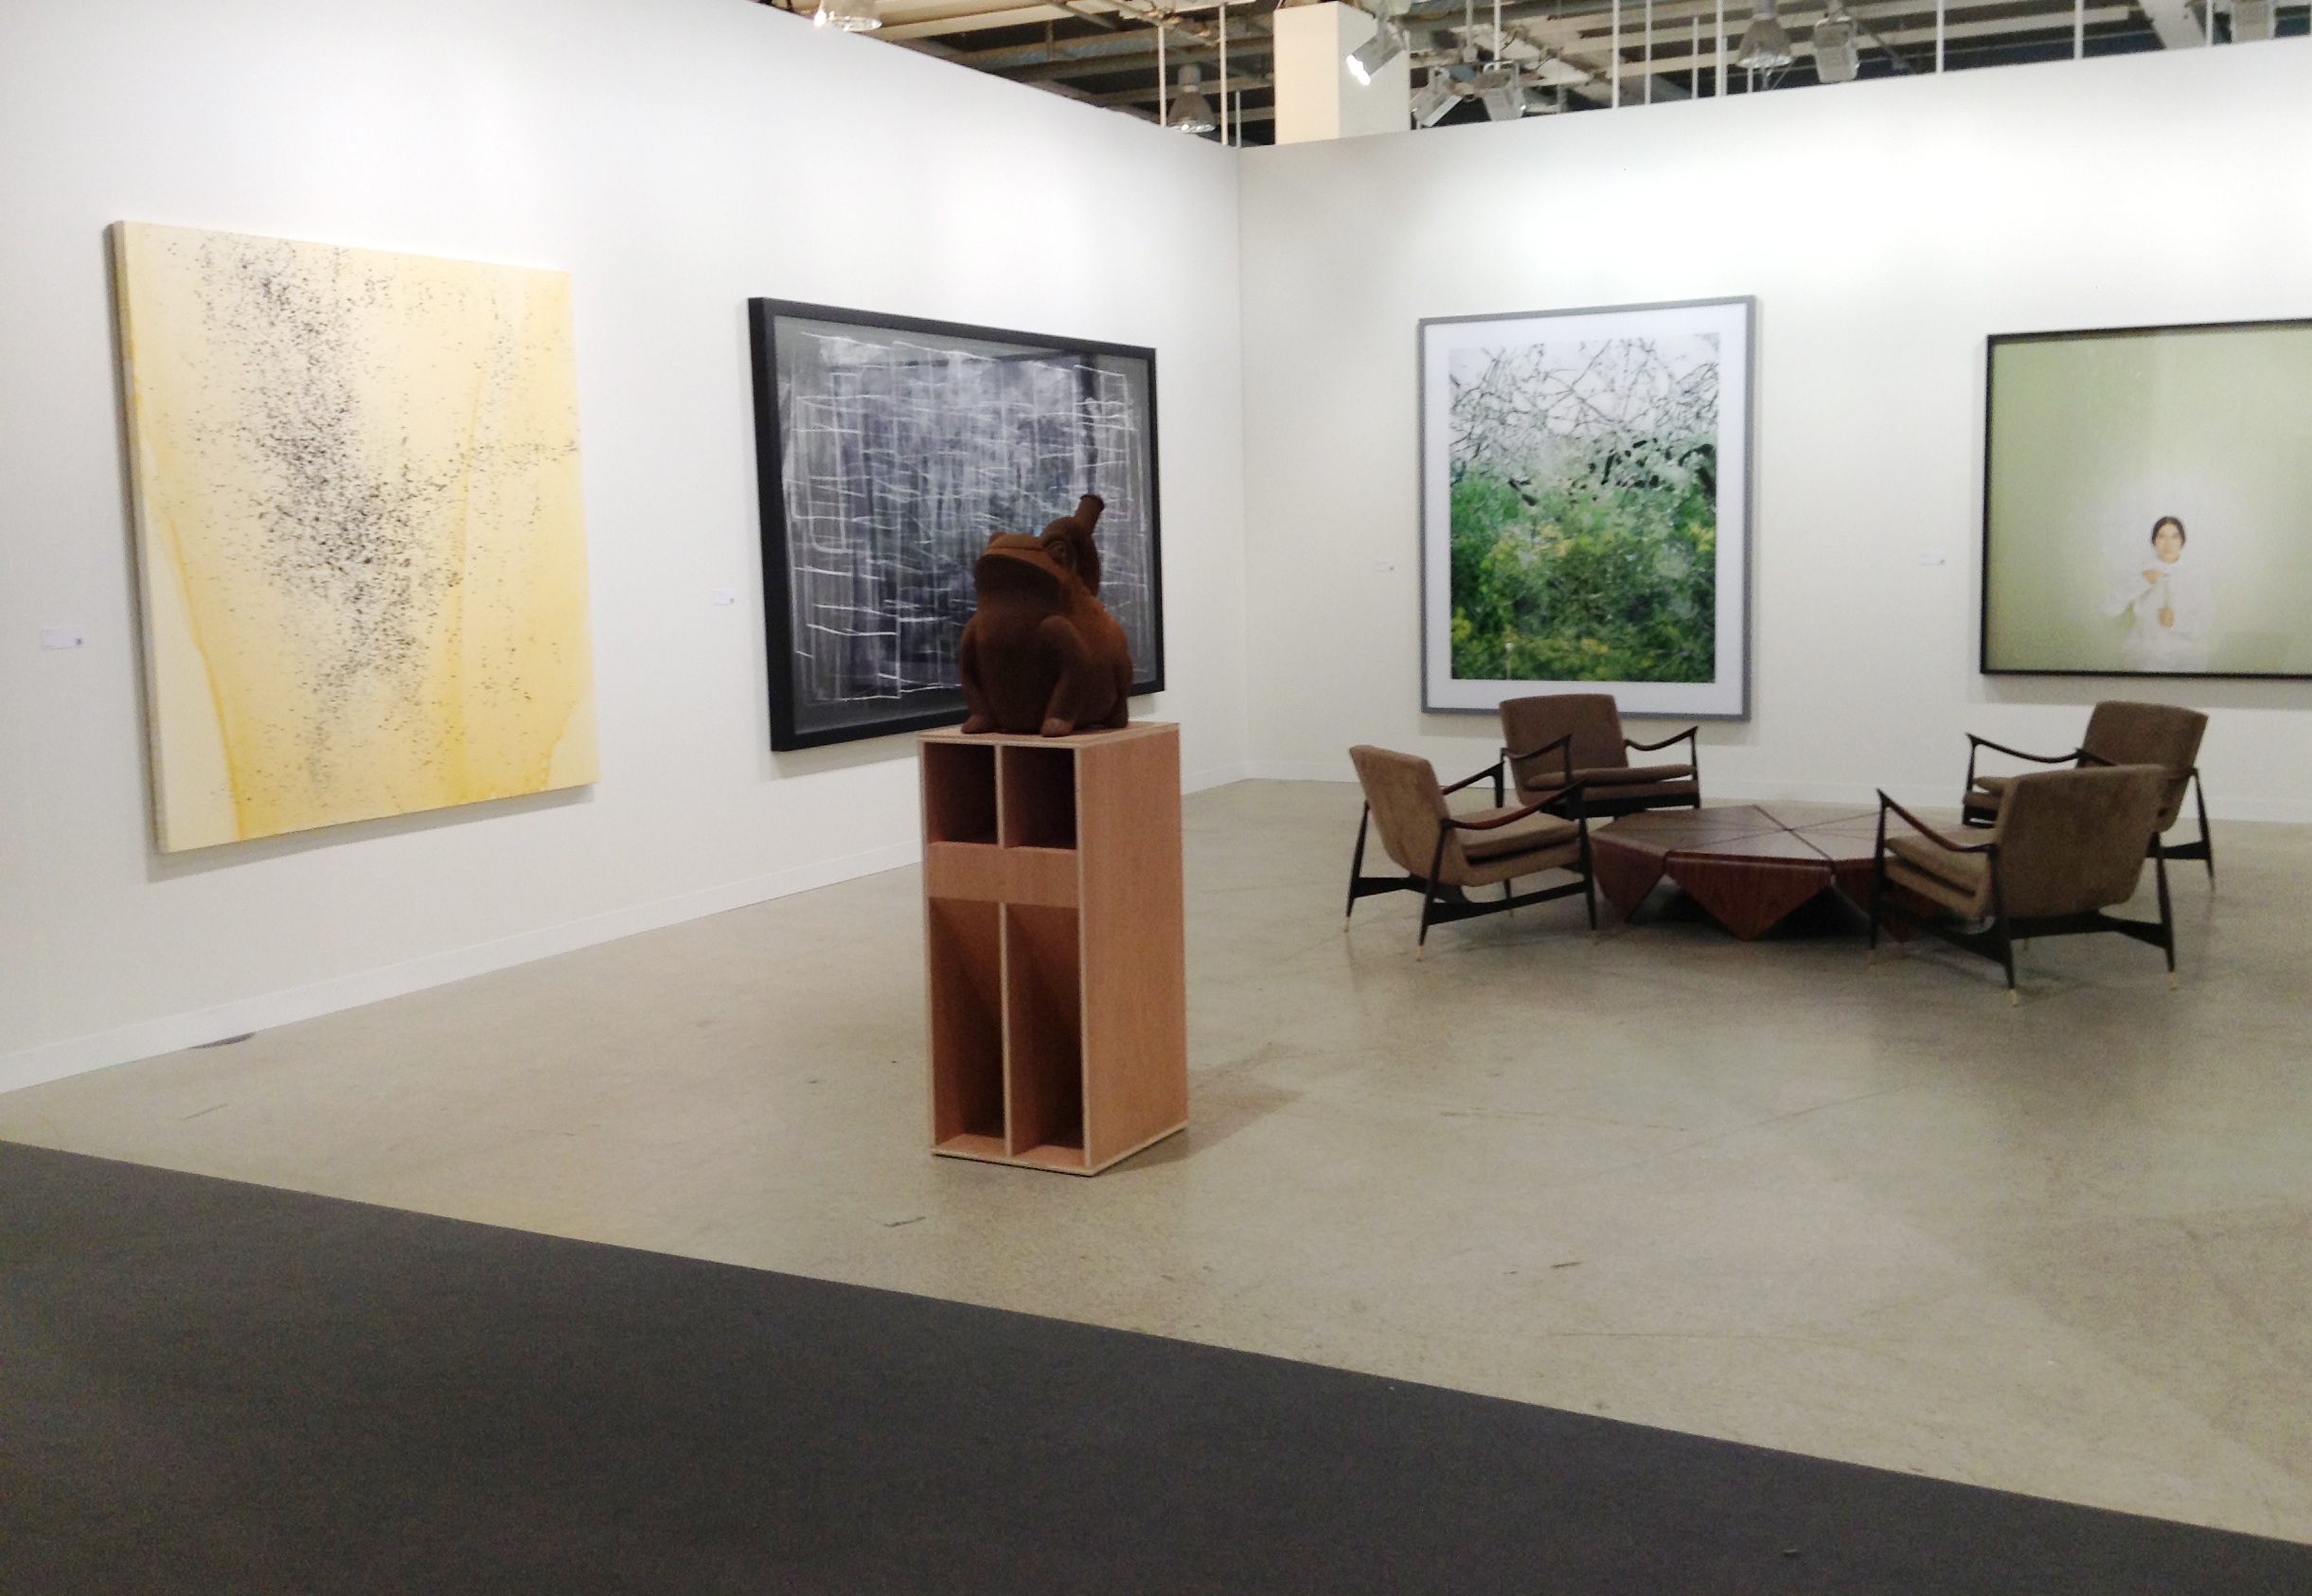 Art Basel 2013 booth images 3